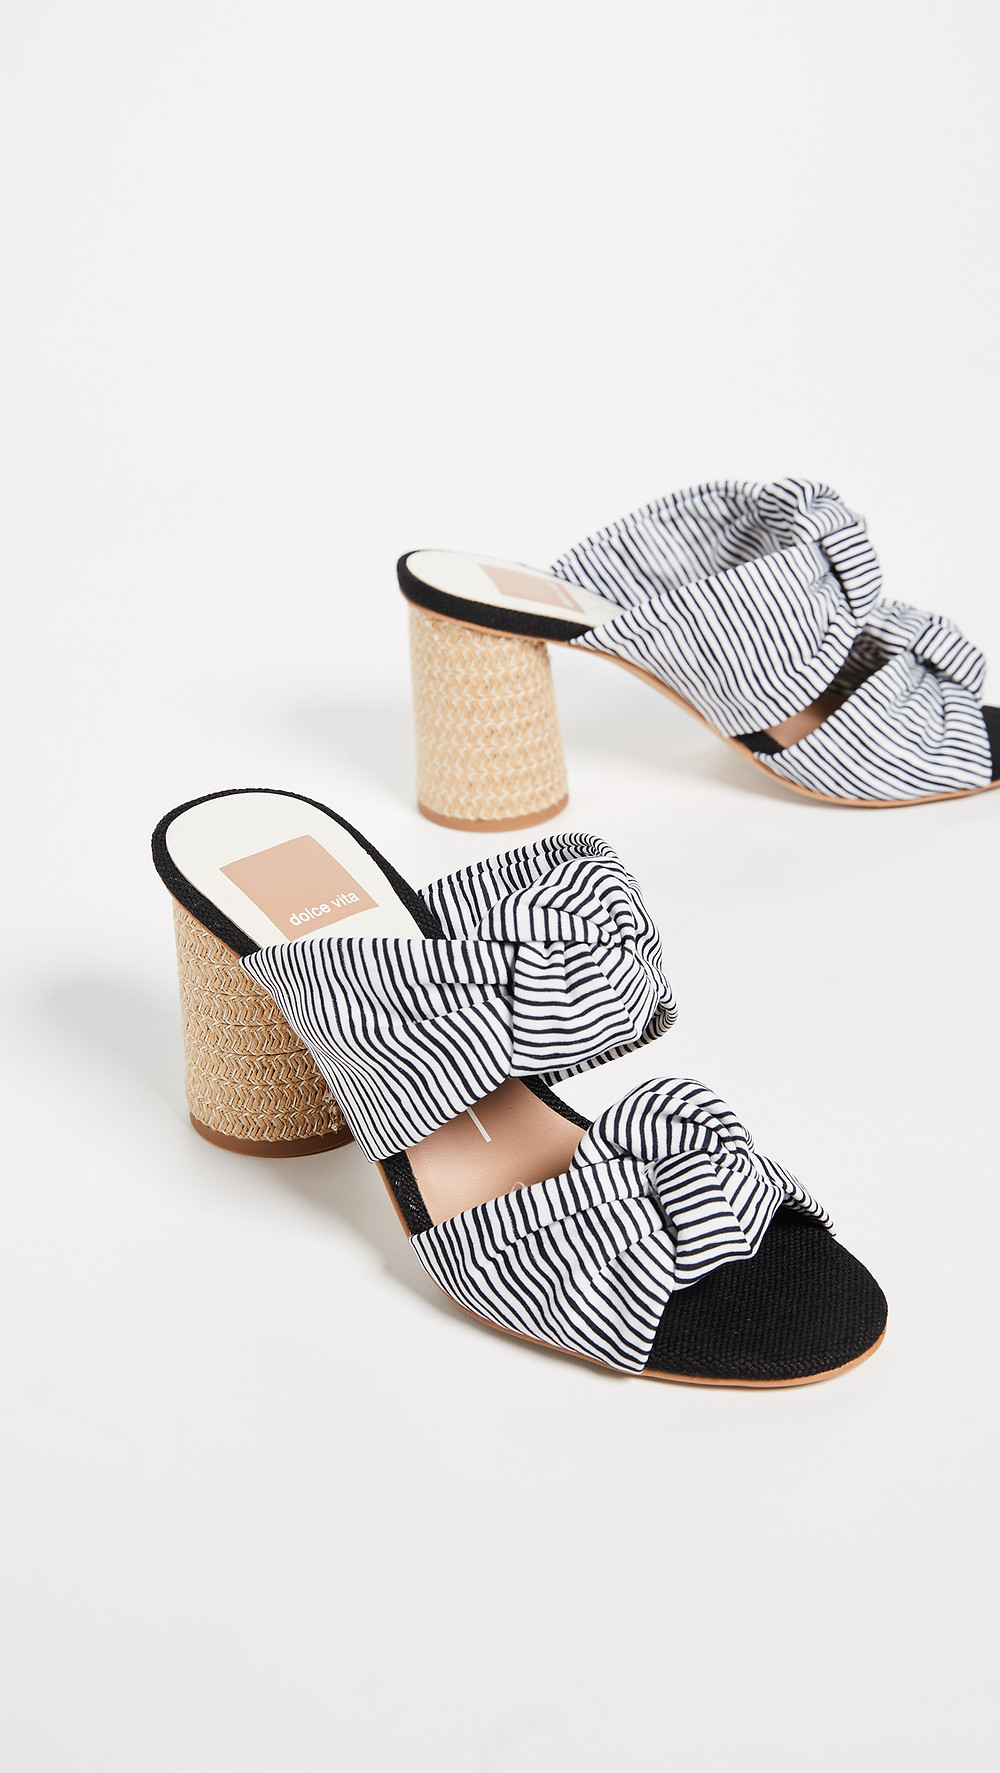 The most stunning sandals for spring and summer